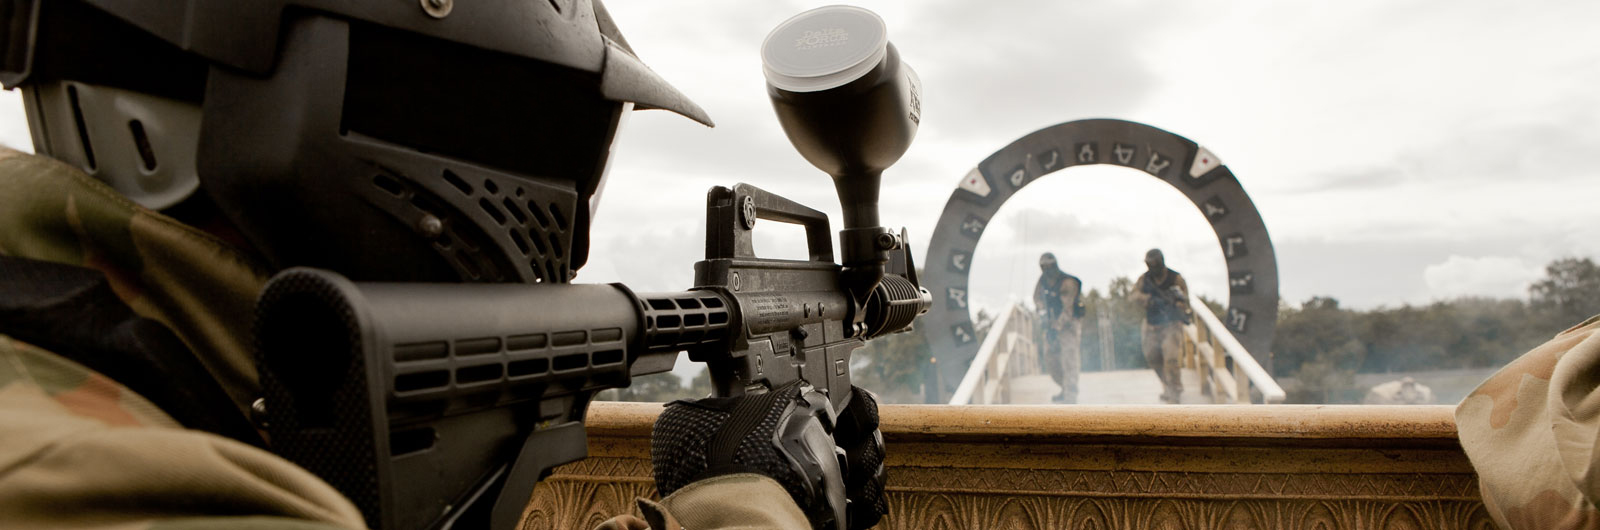 paintball-stargate-gamezone-uk